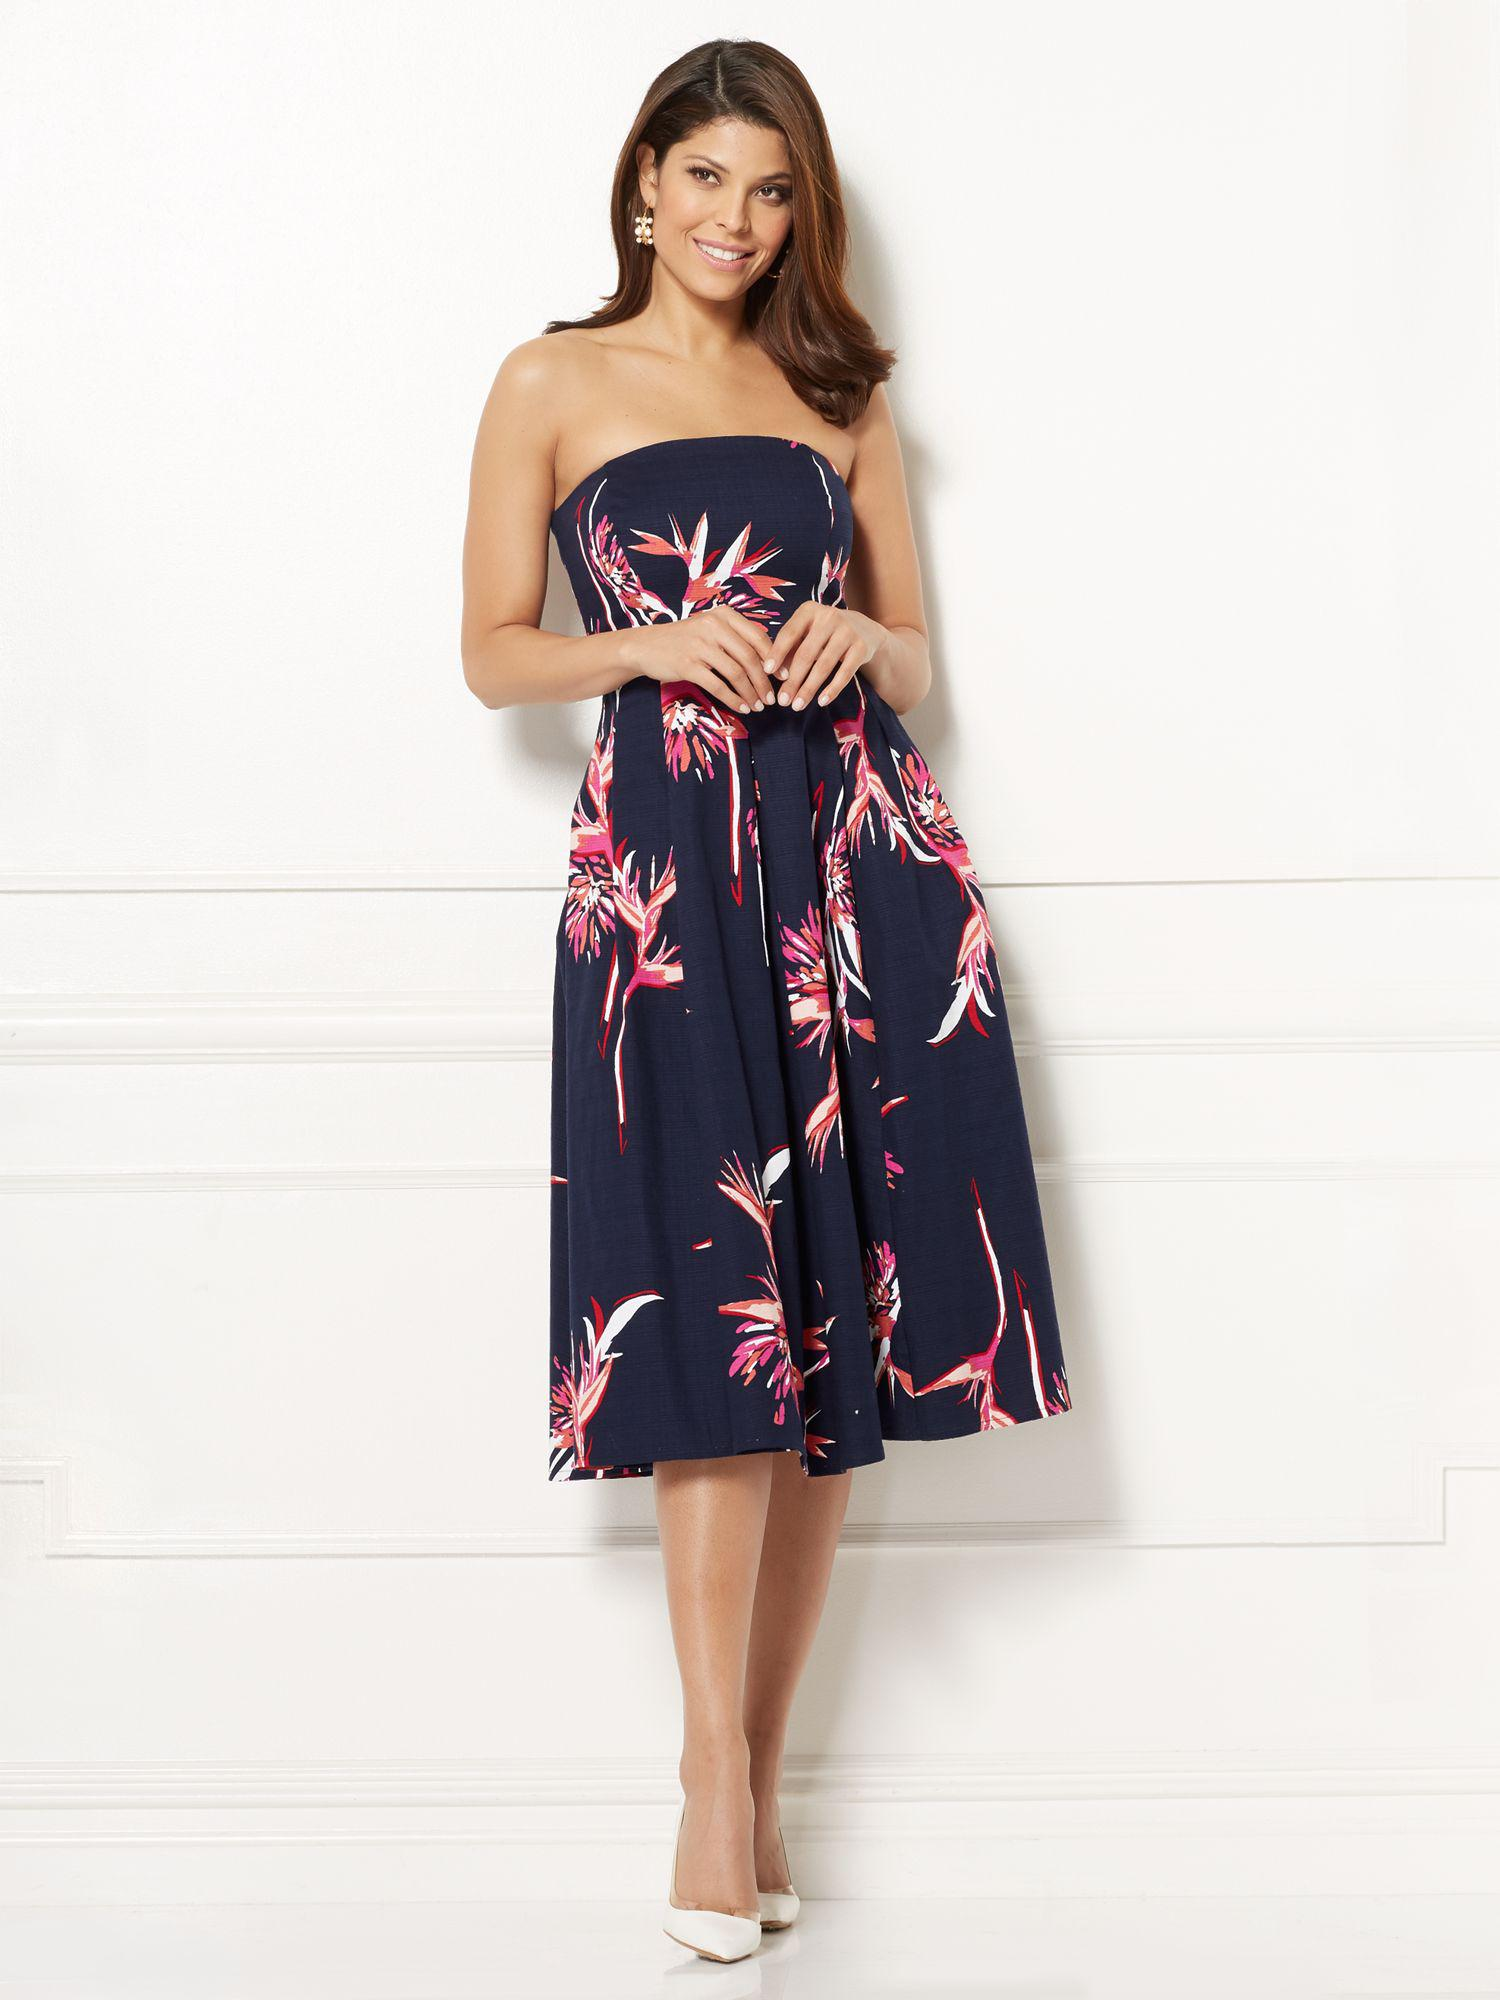 98d5ab2878 Lyst - New York   Company Eva Mendes Collection - Del Mar Strapless ...